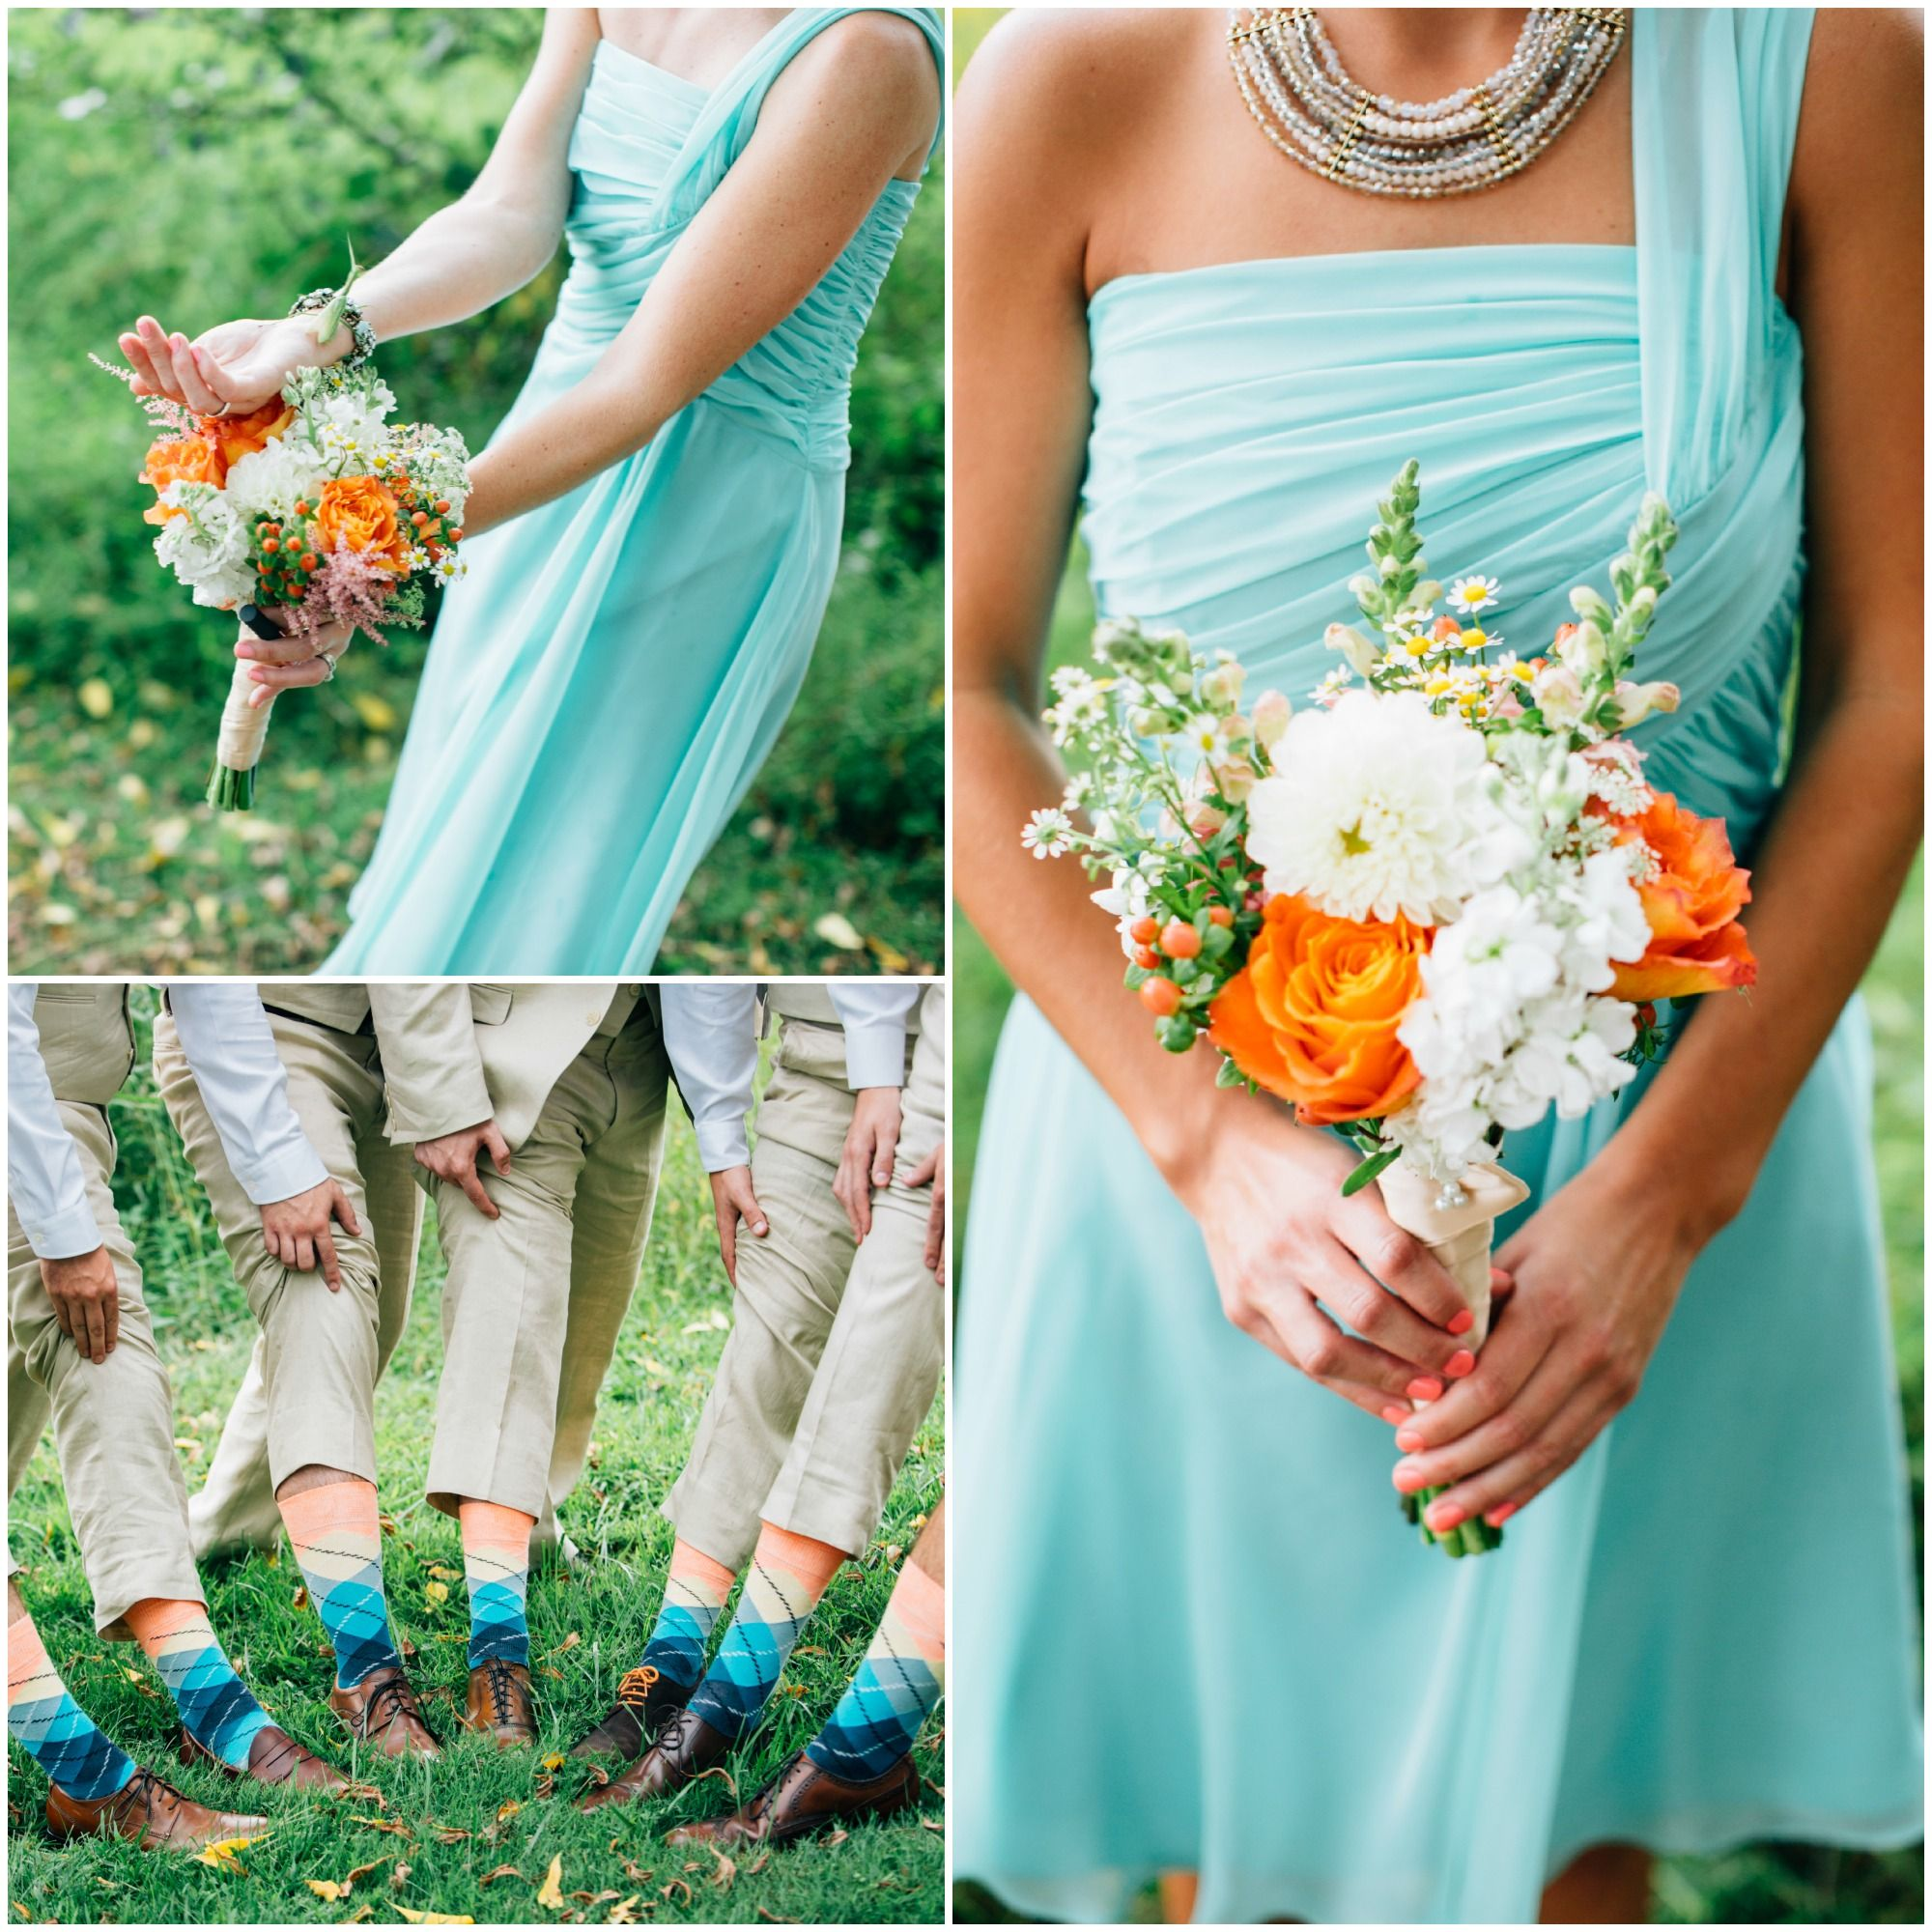 Examples of mint dresses with orange and white bouquets rachael examples of mint dresses with orange and white bouquets ombrellifo Images